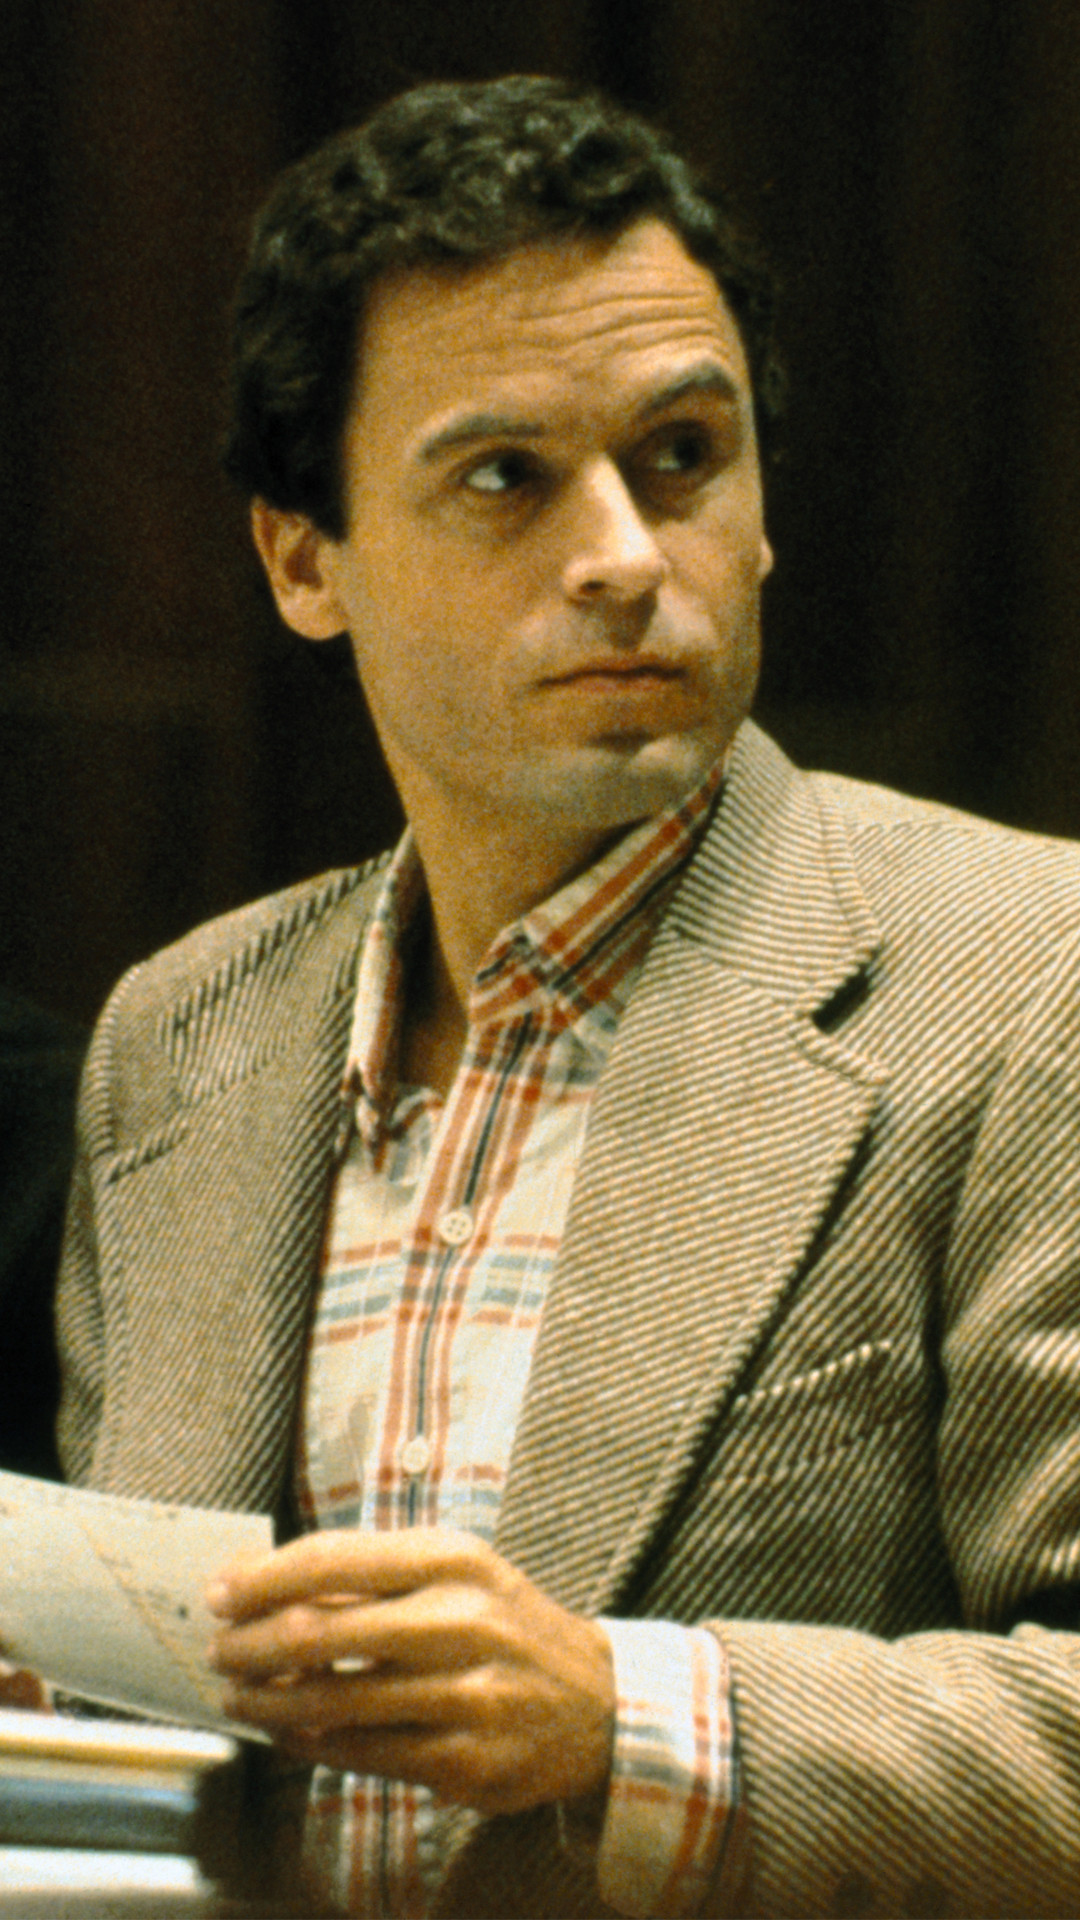 Ted Bundy's Girlfriend Details Narrowly Avoiding Being His Next